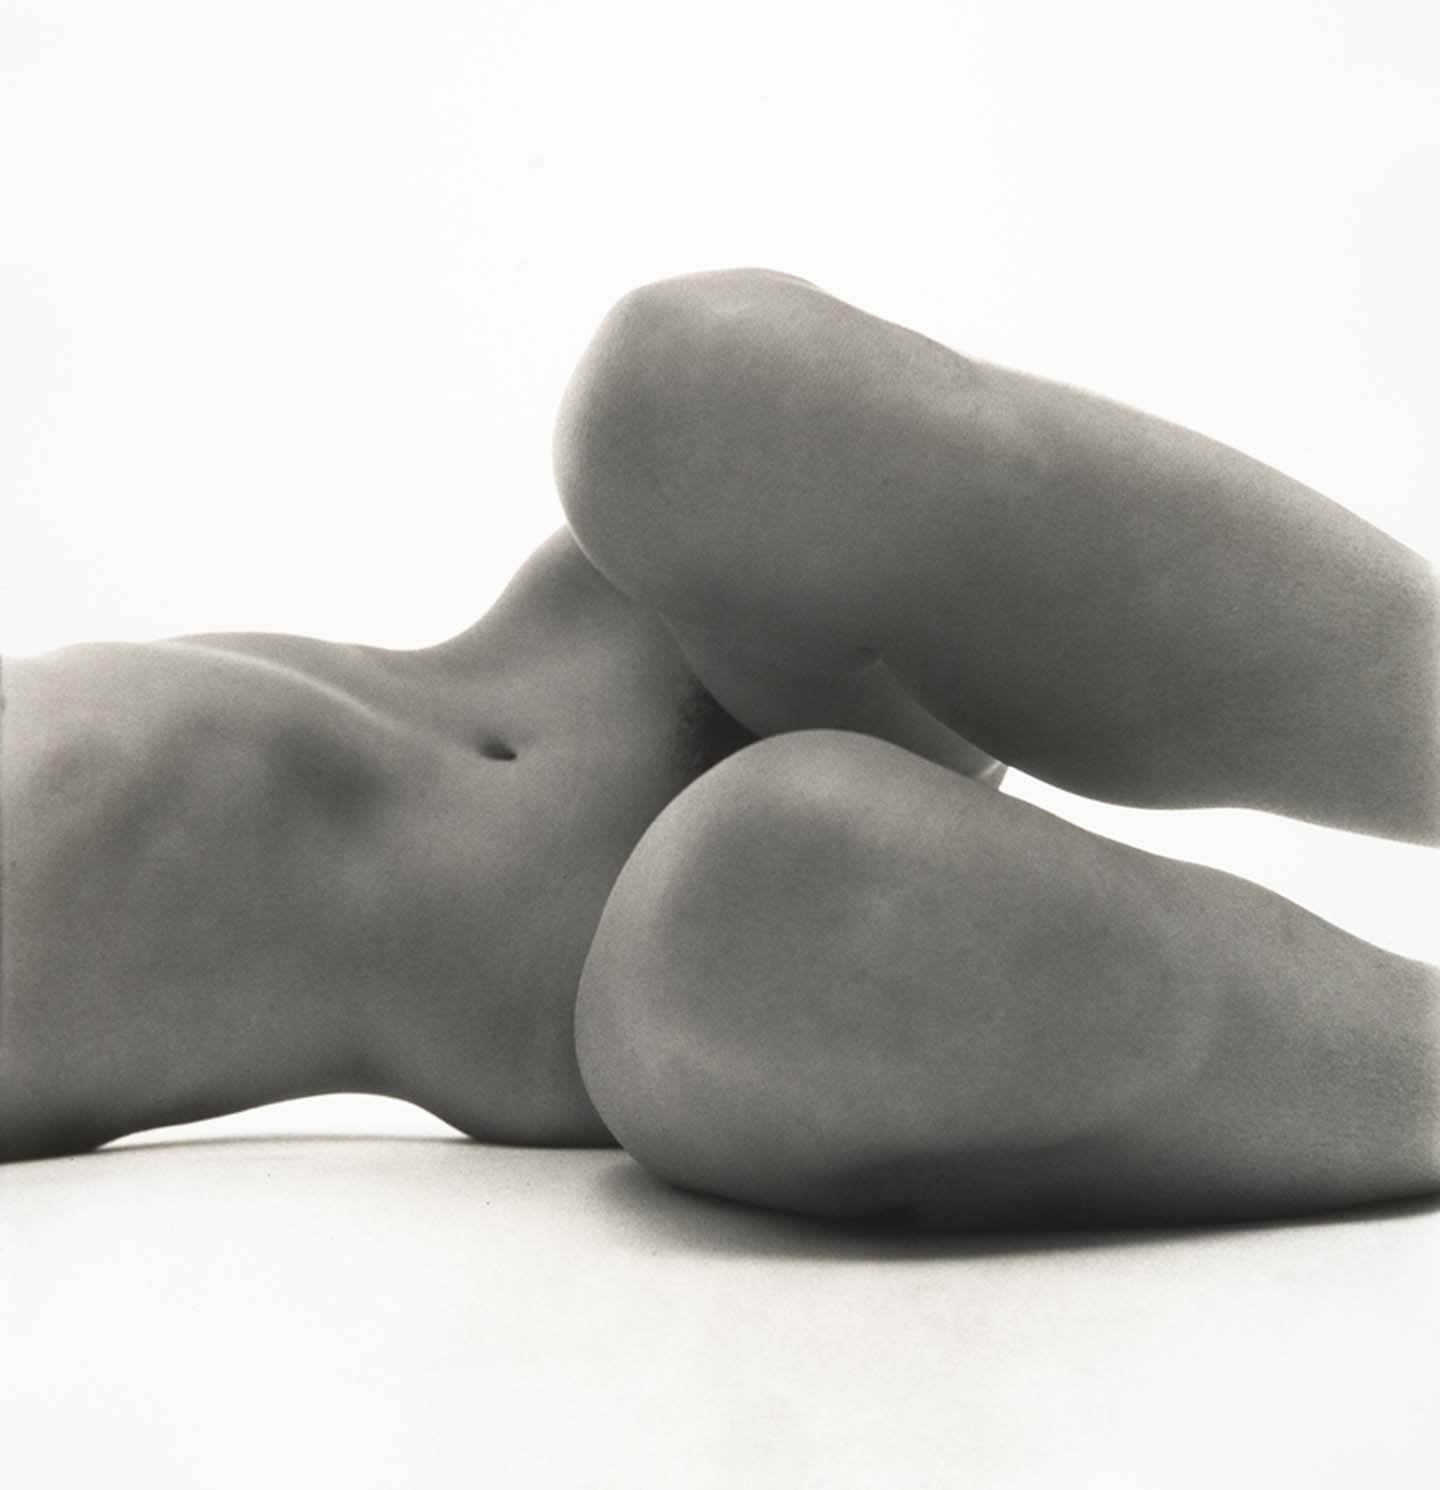 Nude No. 58, New York, 1949-50 © The Irving Penn Foundation